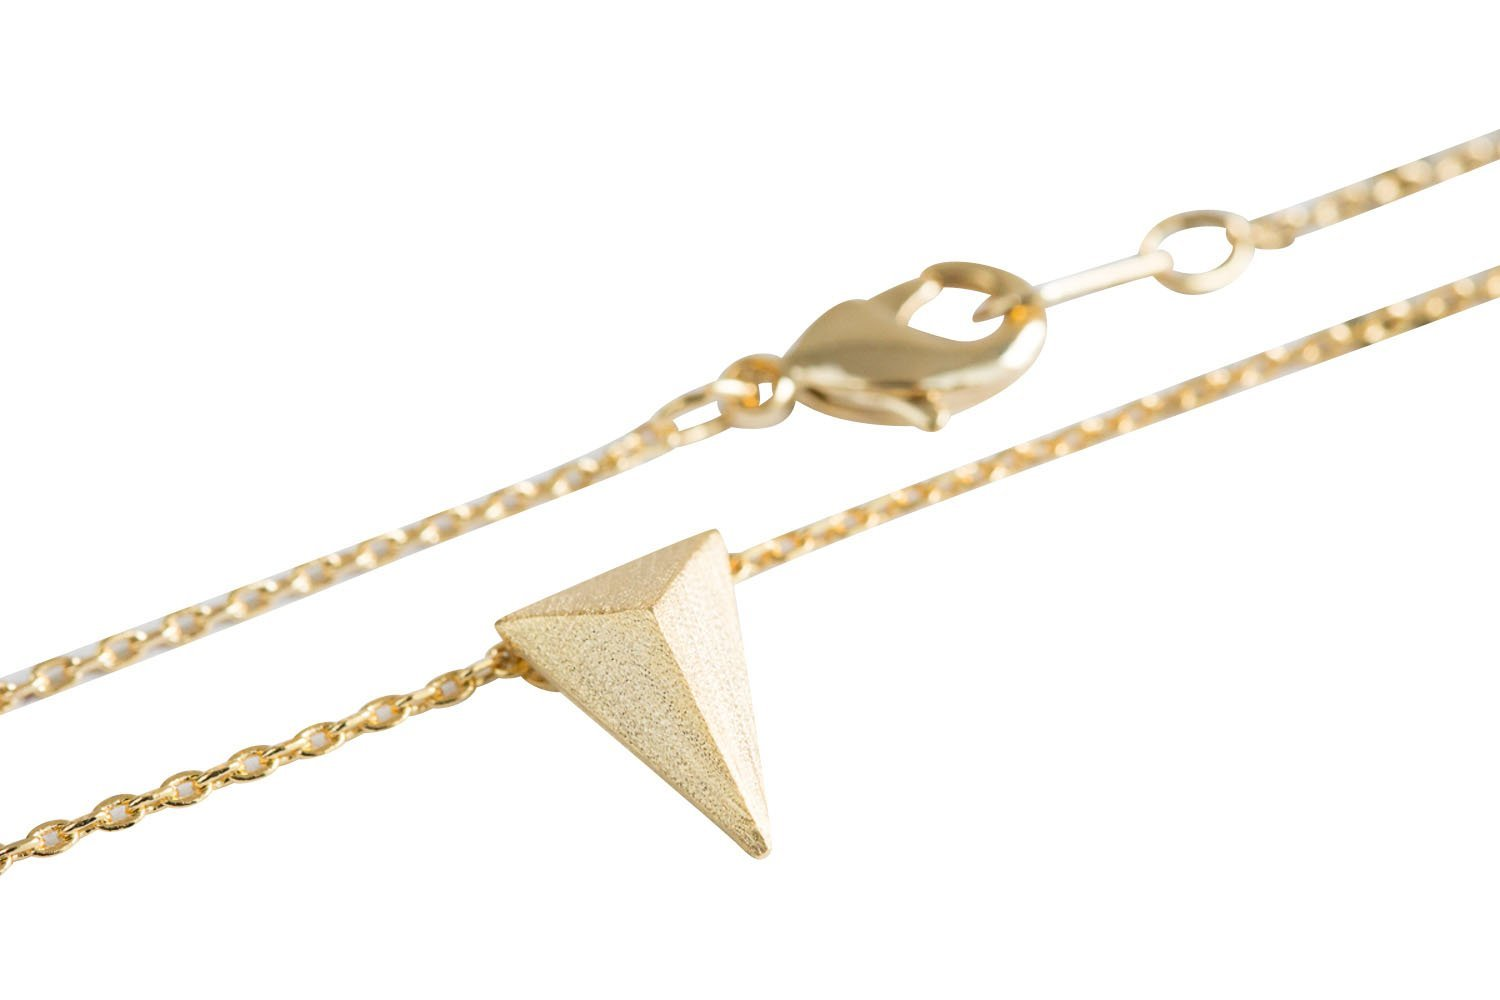 Solid Triangle Necklace-ma , triangle jewelry, triangle necklace, triangle shape jewelry, triangle shape necklace, triangle jewellry, geometric jewelr